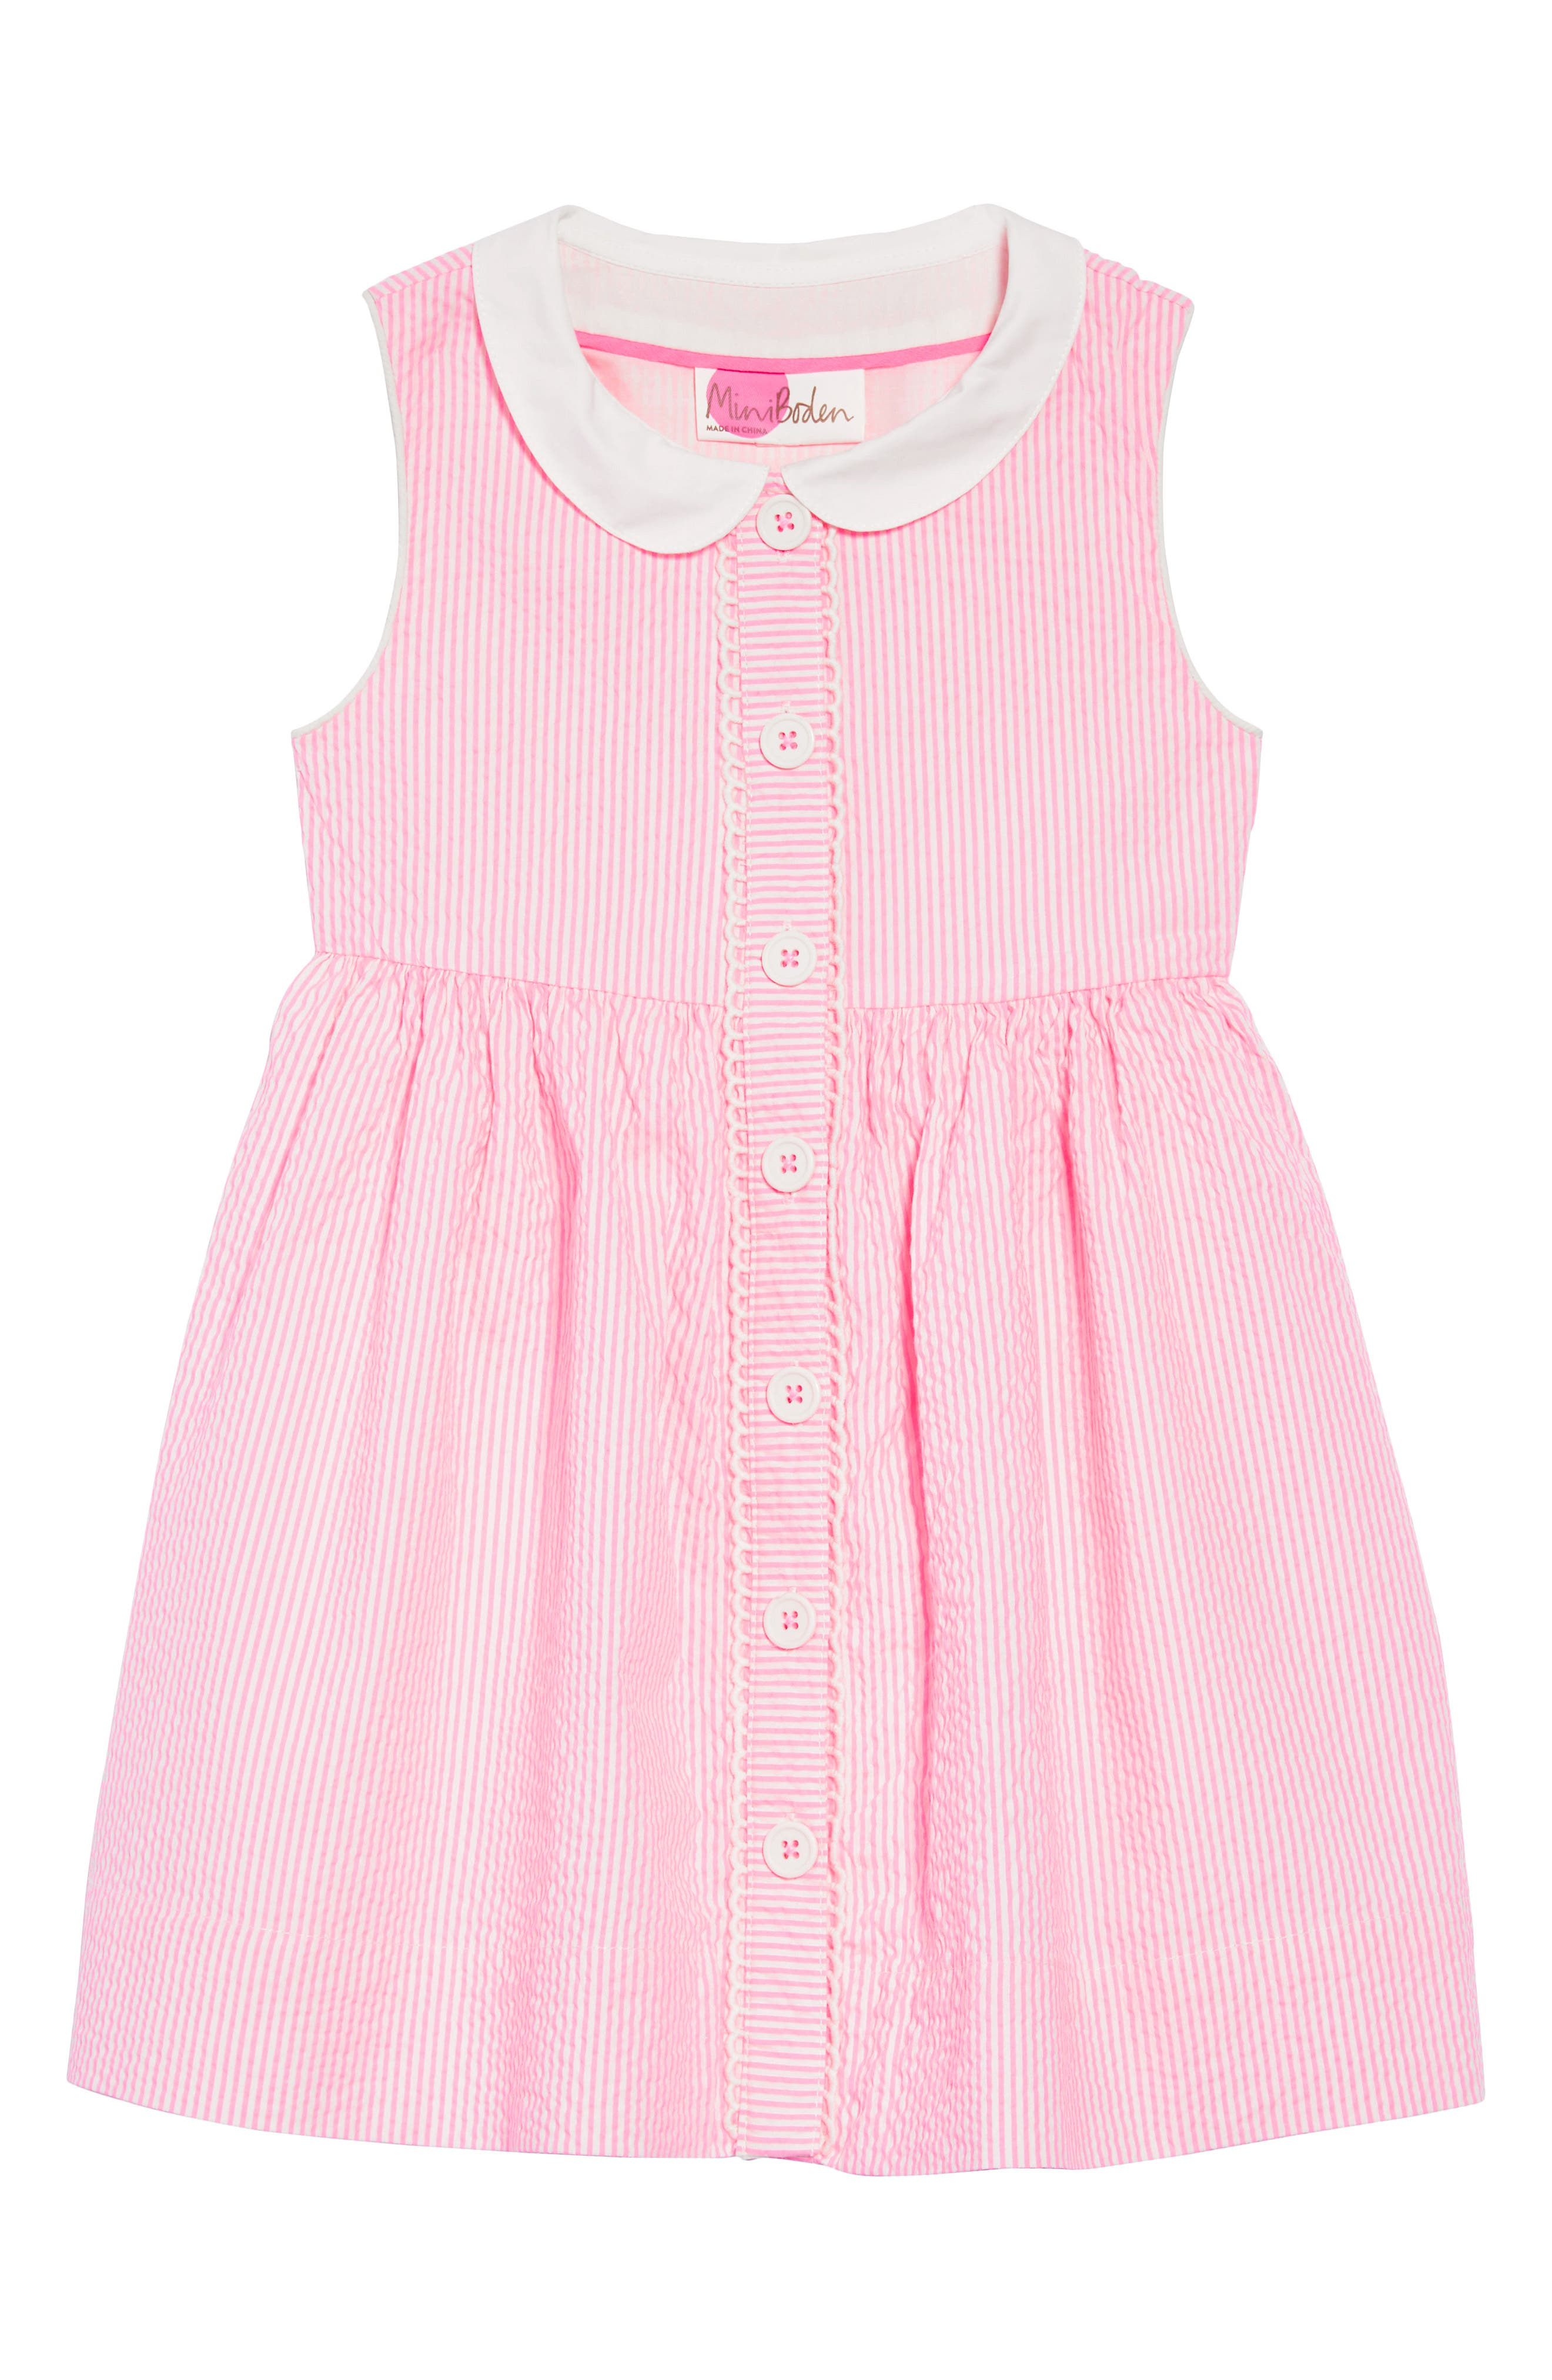 Nostalgic Collar Dress,                             Main thumbnail 1, color,                             Knockout Pink